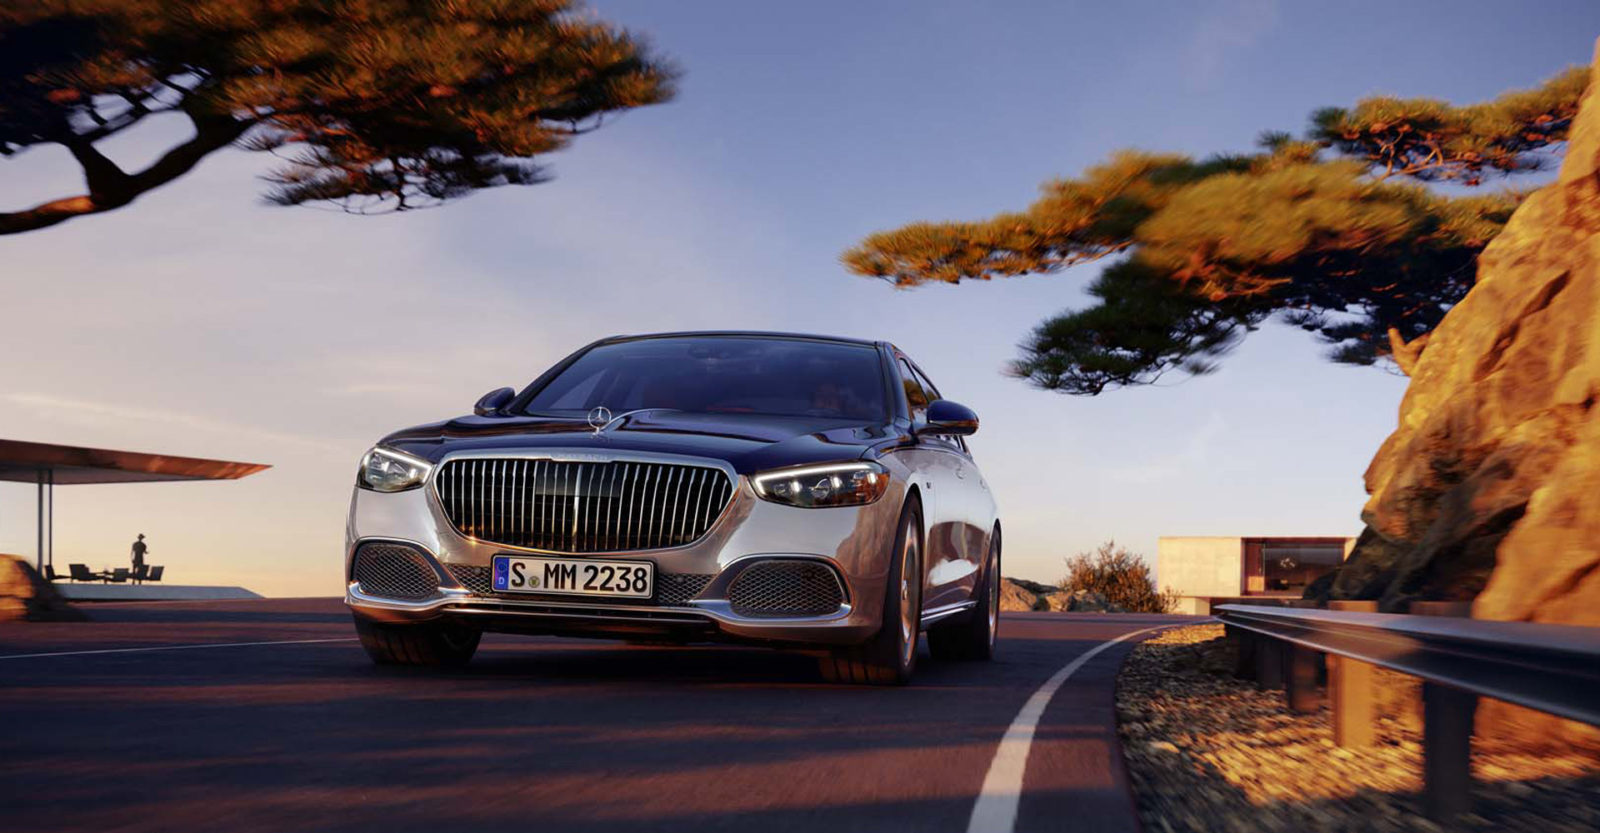 maybach-celebrates-centenary-of-its-first-car's-launch